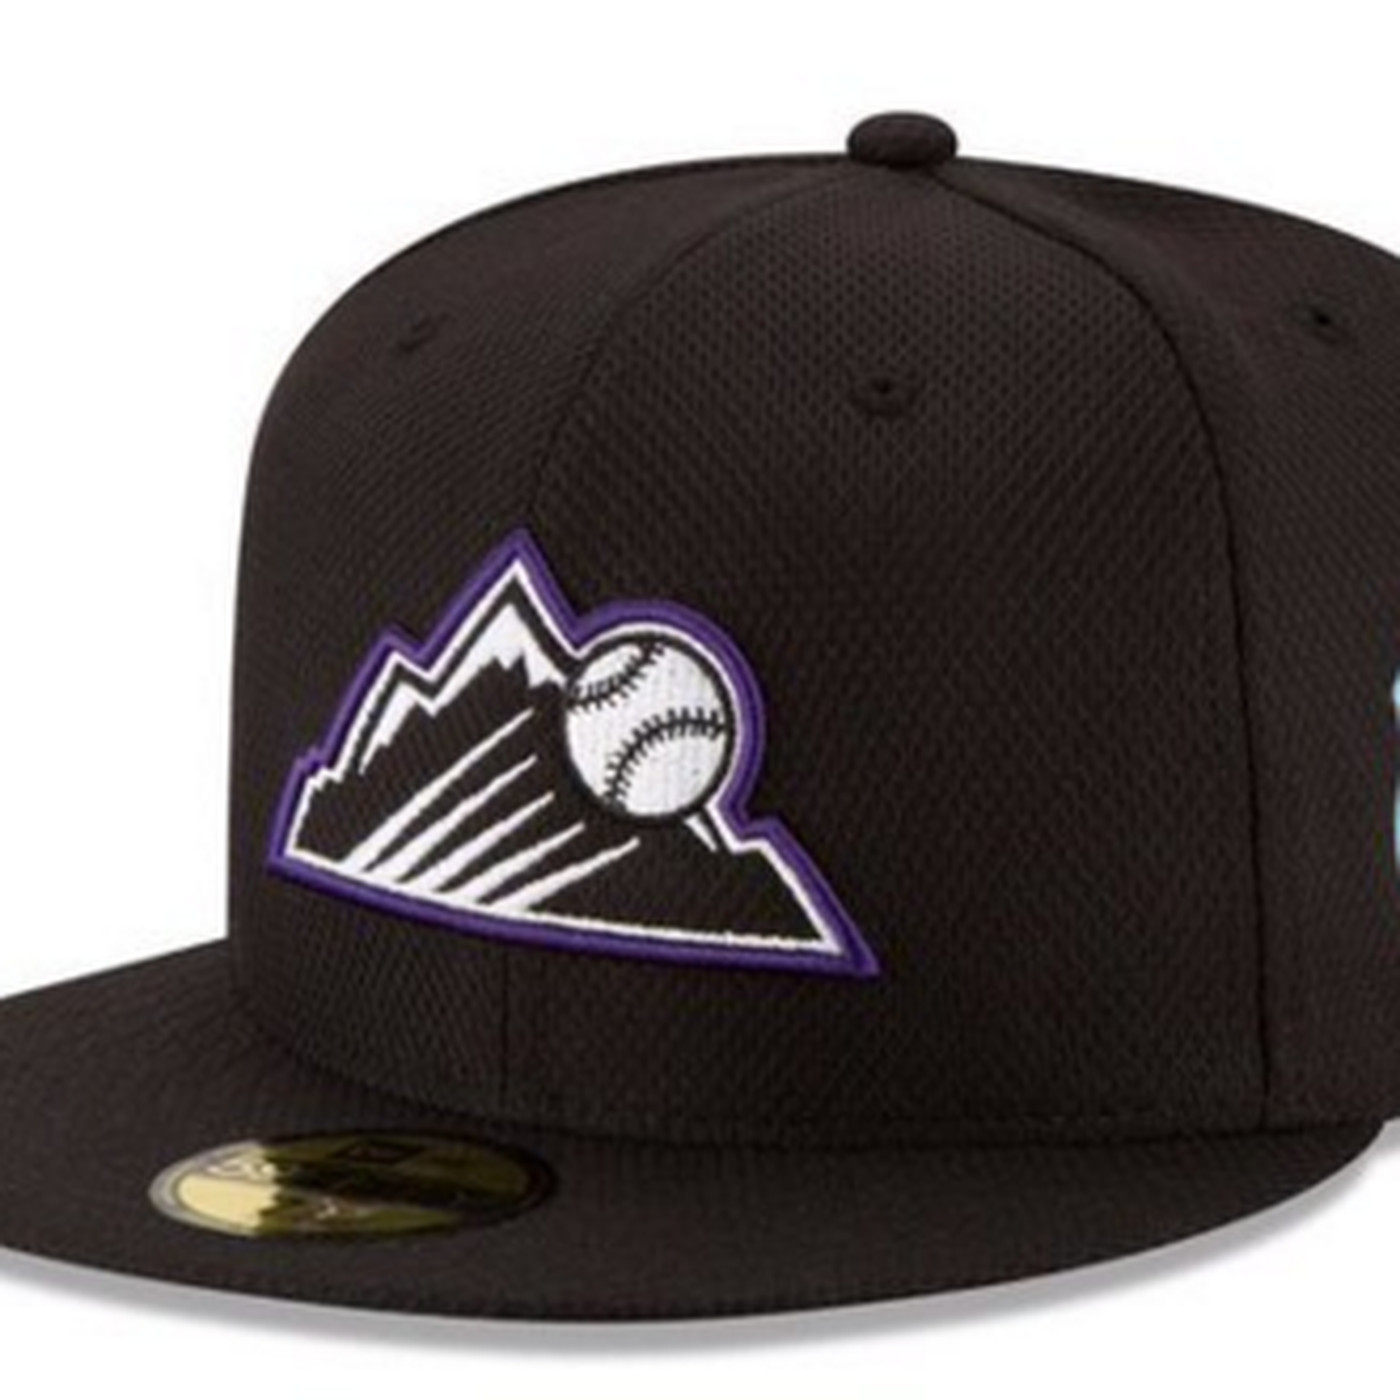 Rockies will have new spring training gear for 2016 and the hats are HOT -  Purple Row 399a748a60d